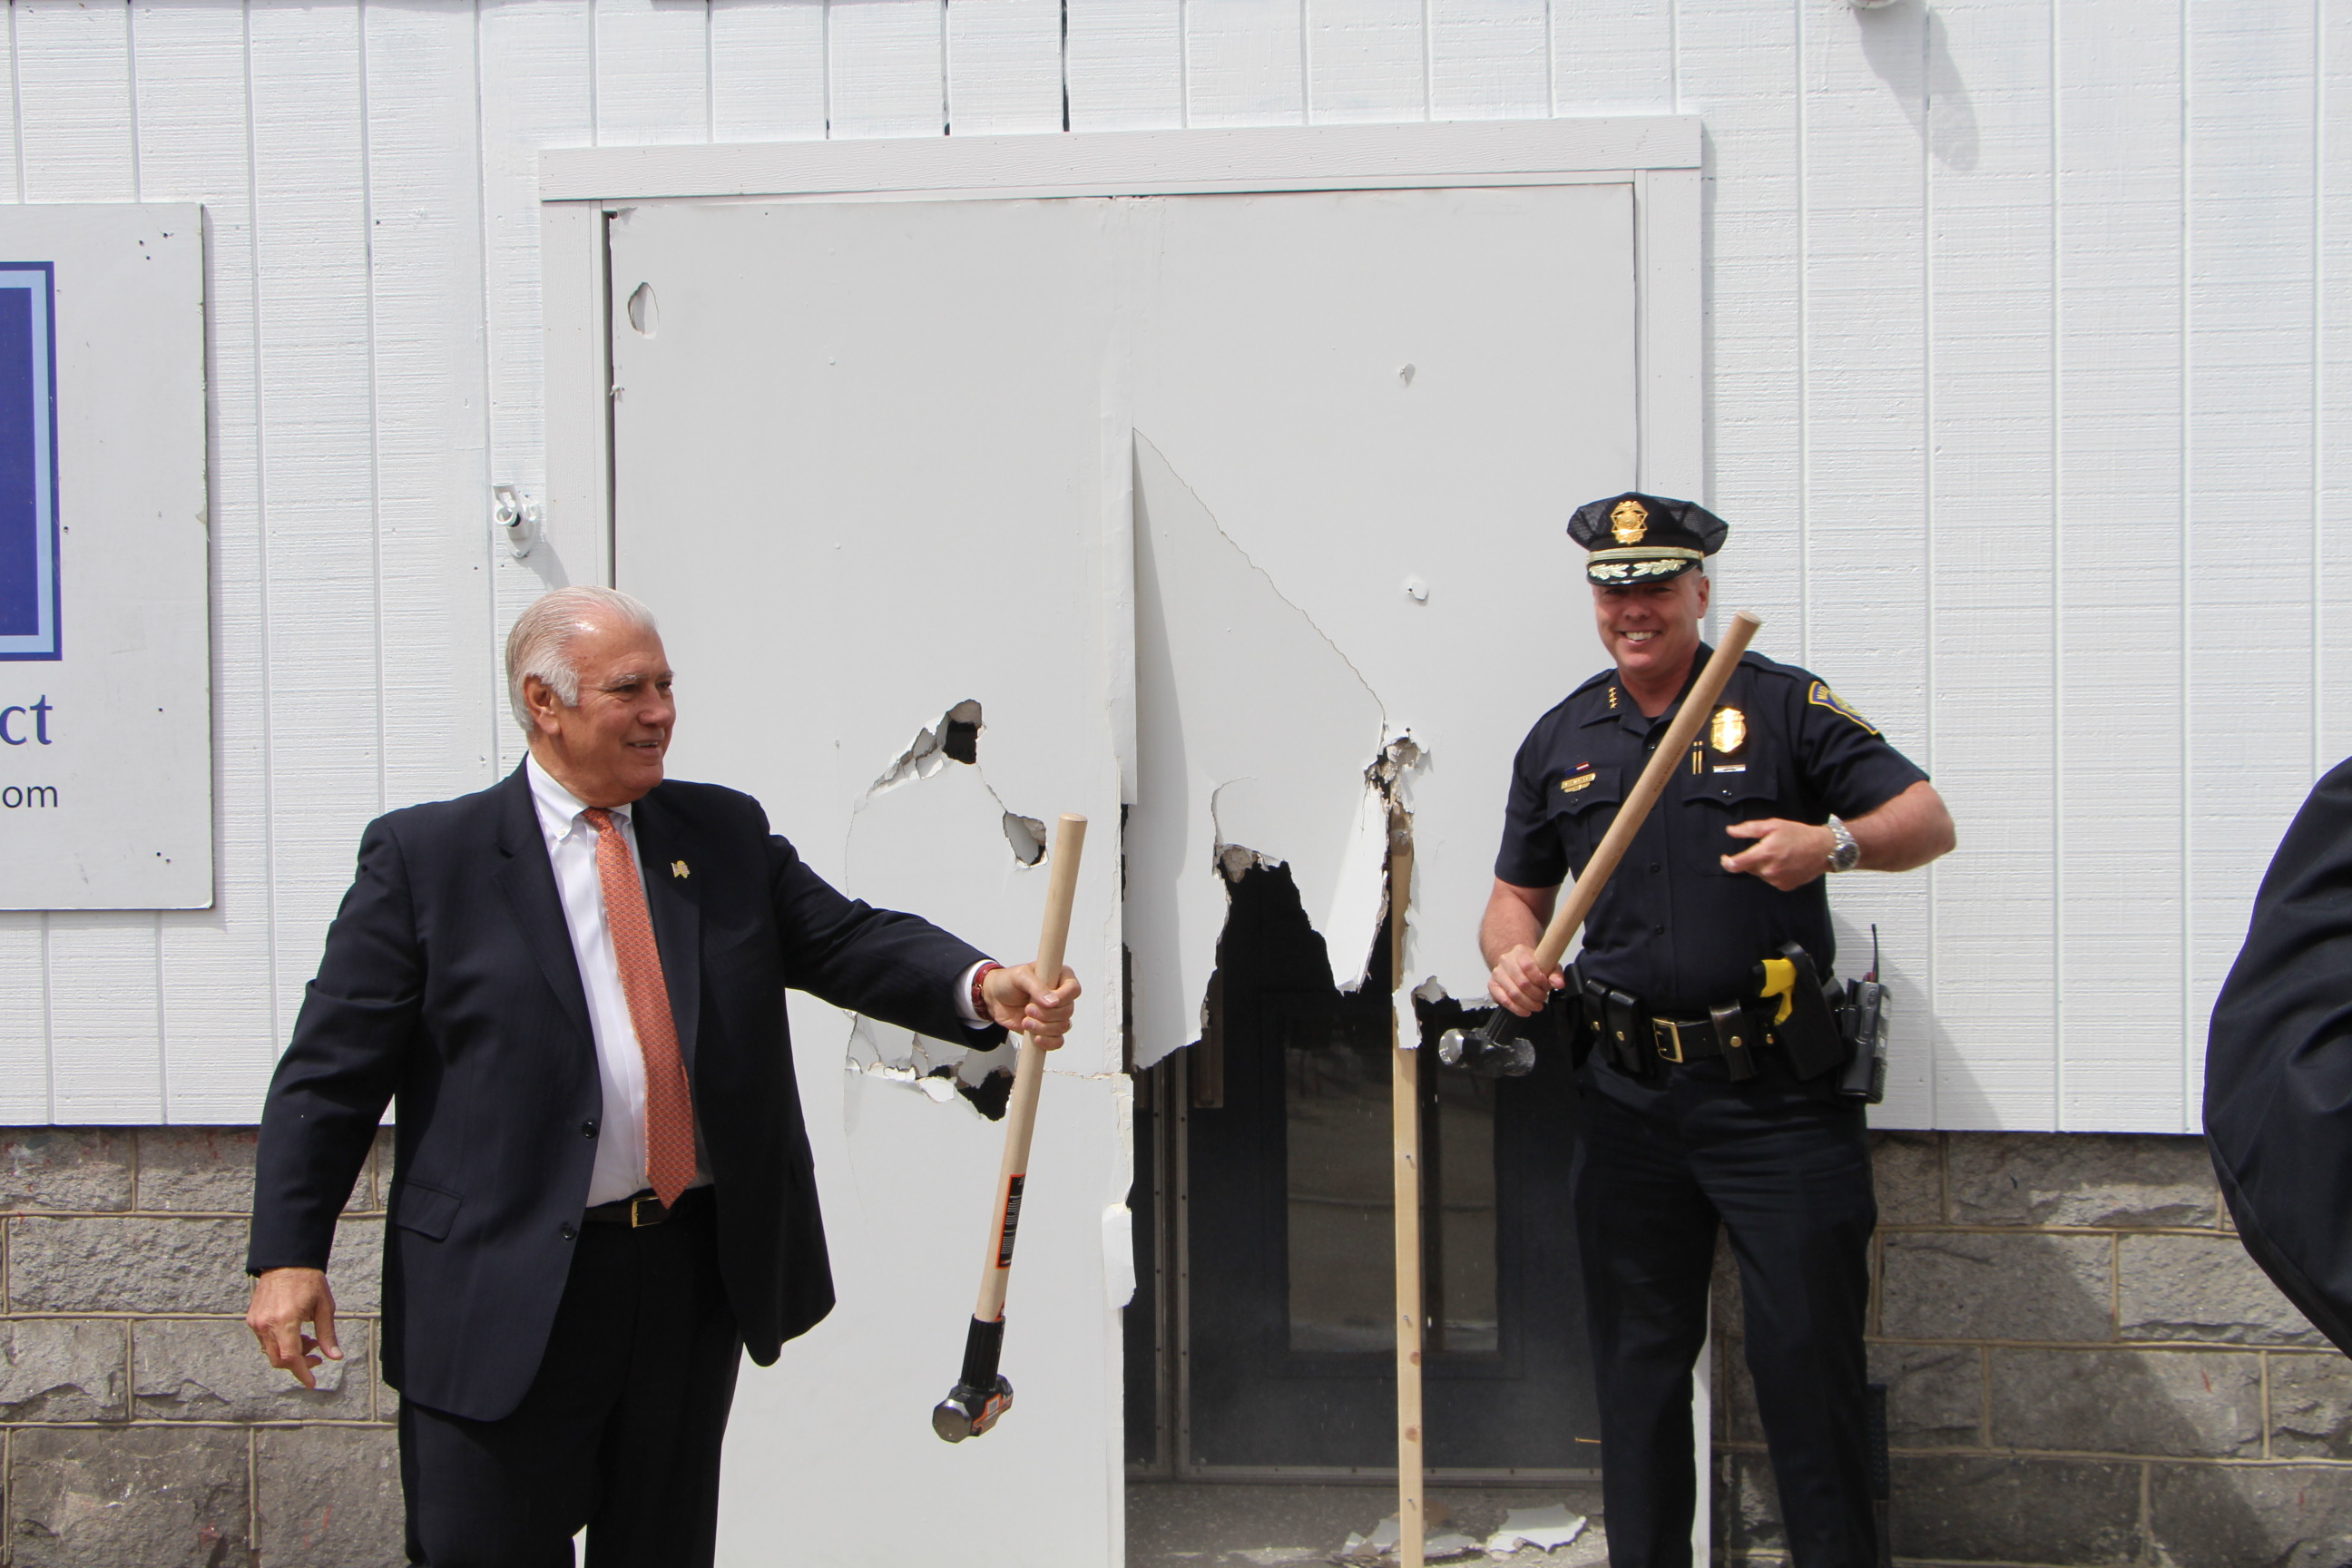 Photo 3: Manchester Mayor Ted Gatsas and Manchester Police Chief Nick Willard break through the entrance of MPAL's Michael Briggs Community Center to celebrate the kickoff of Building on Hope's Build Week 2016.